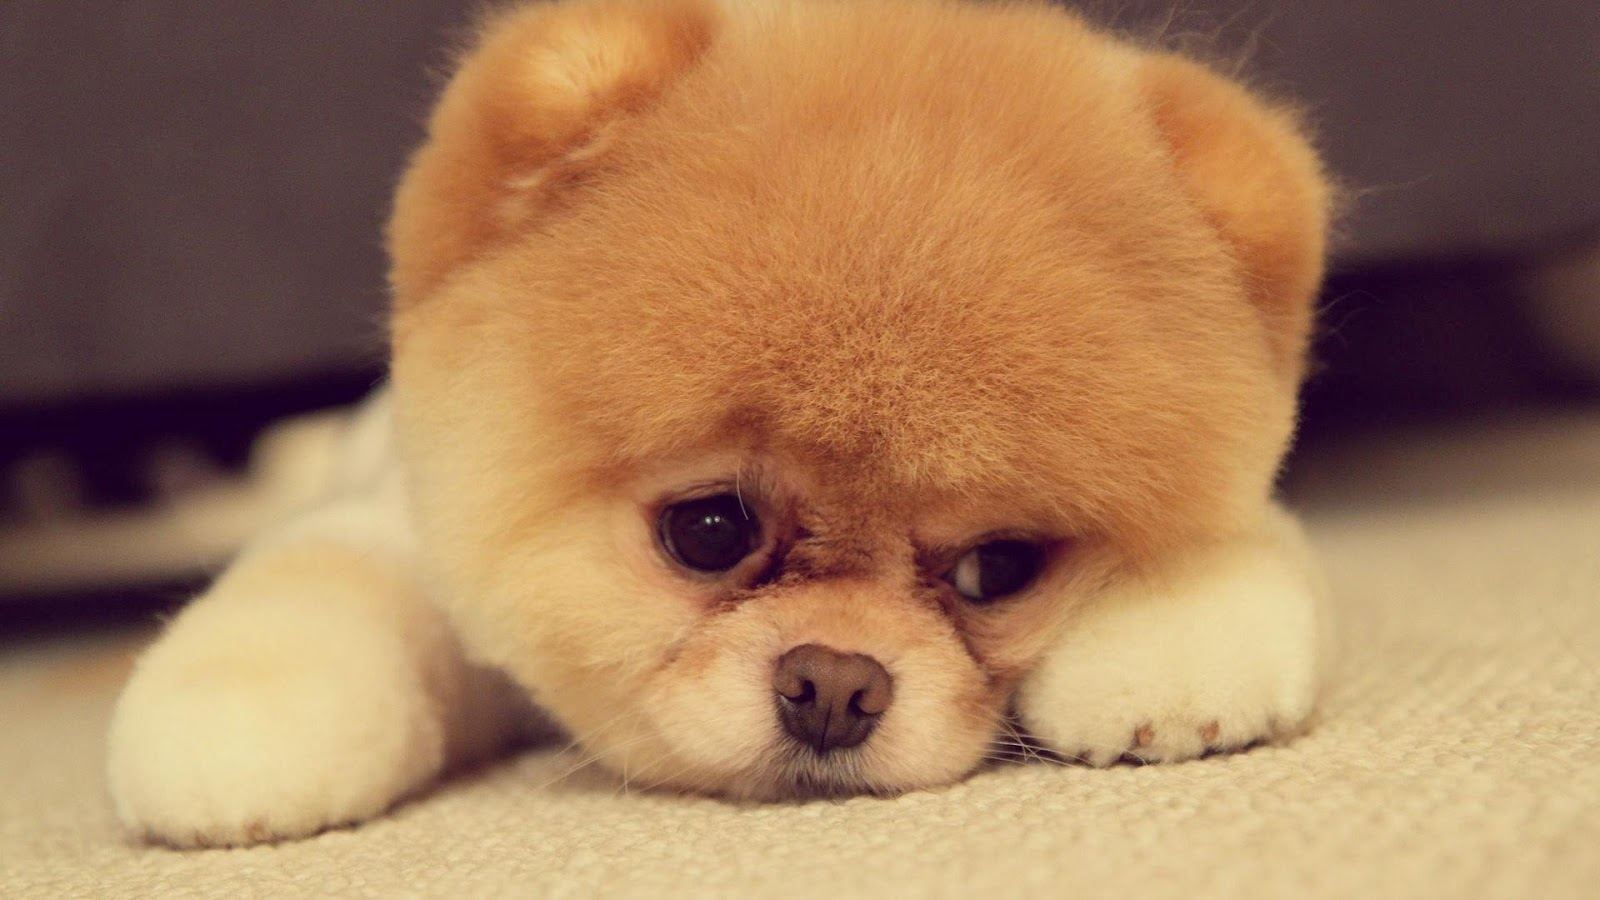 Am not sad its the light cute puppies pictures